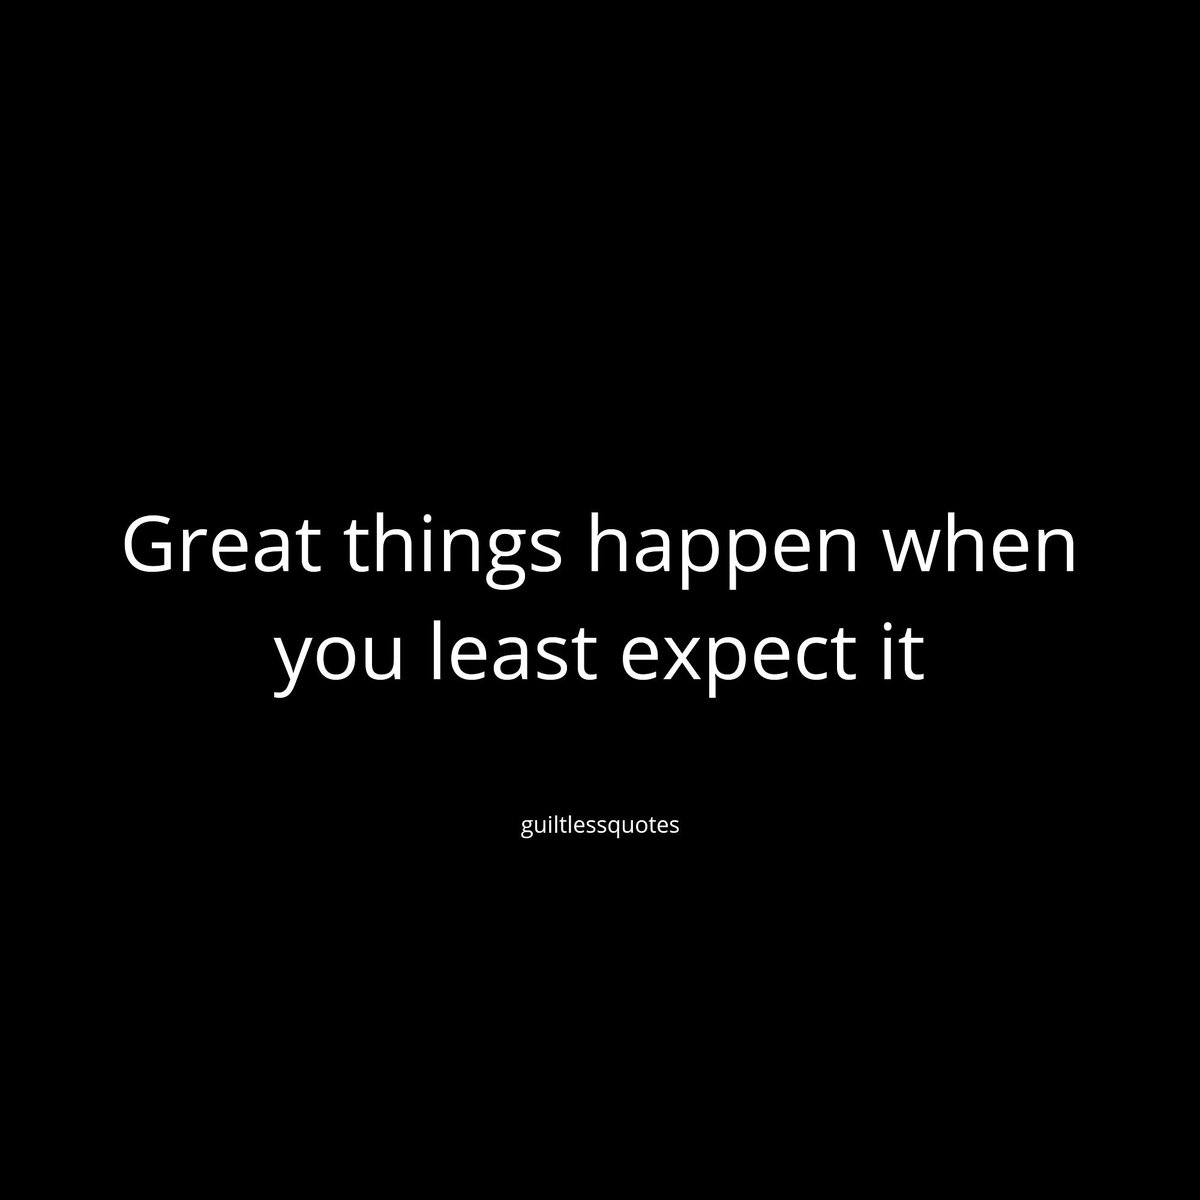 Guiltless Quotes on Twitter: \